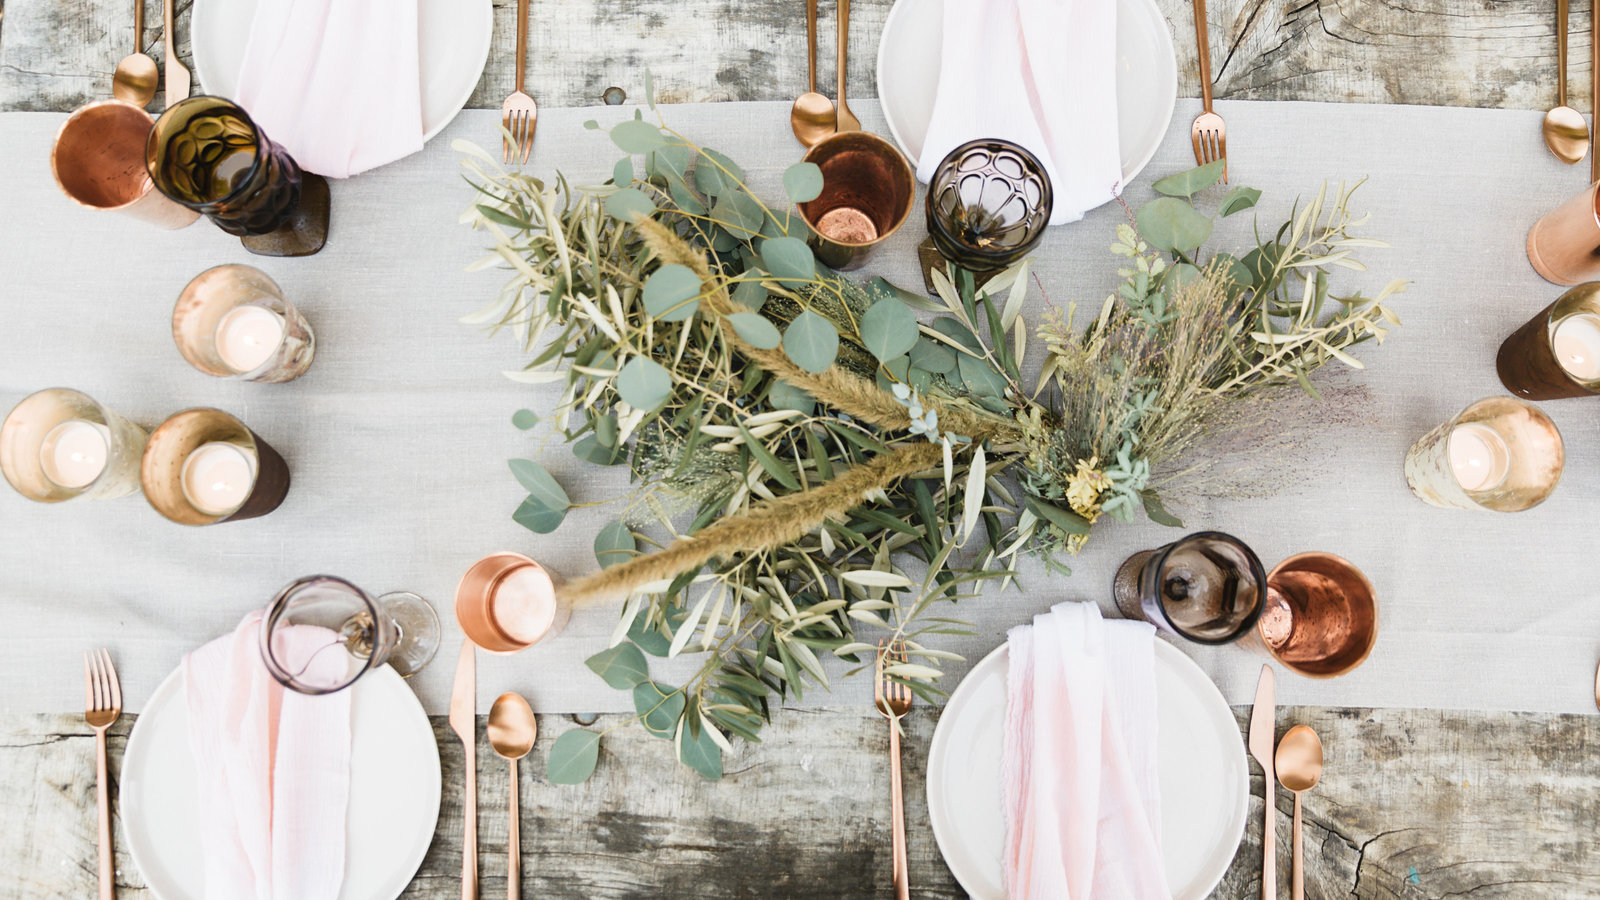 jana williams photography-Thanksgiving DIY Decore ideas (16 of 16)